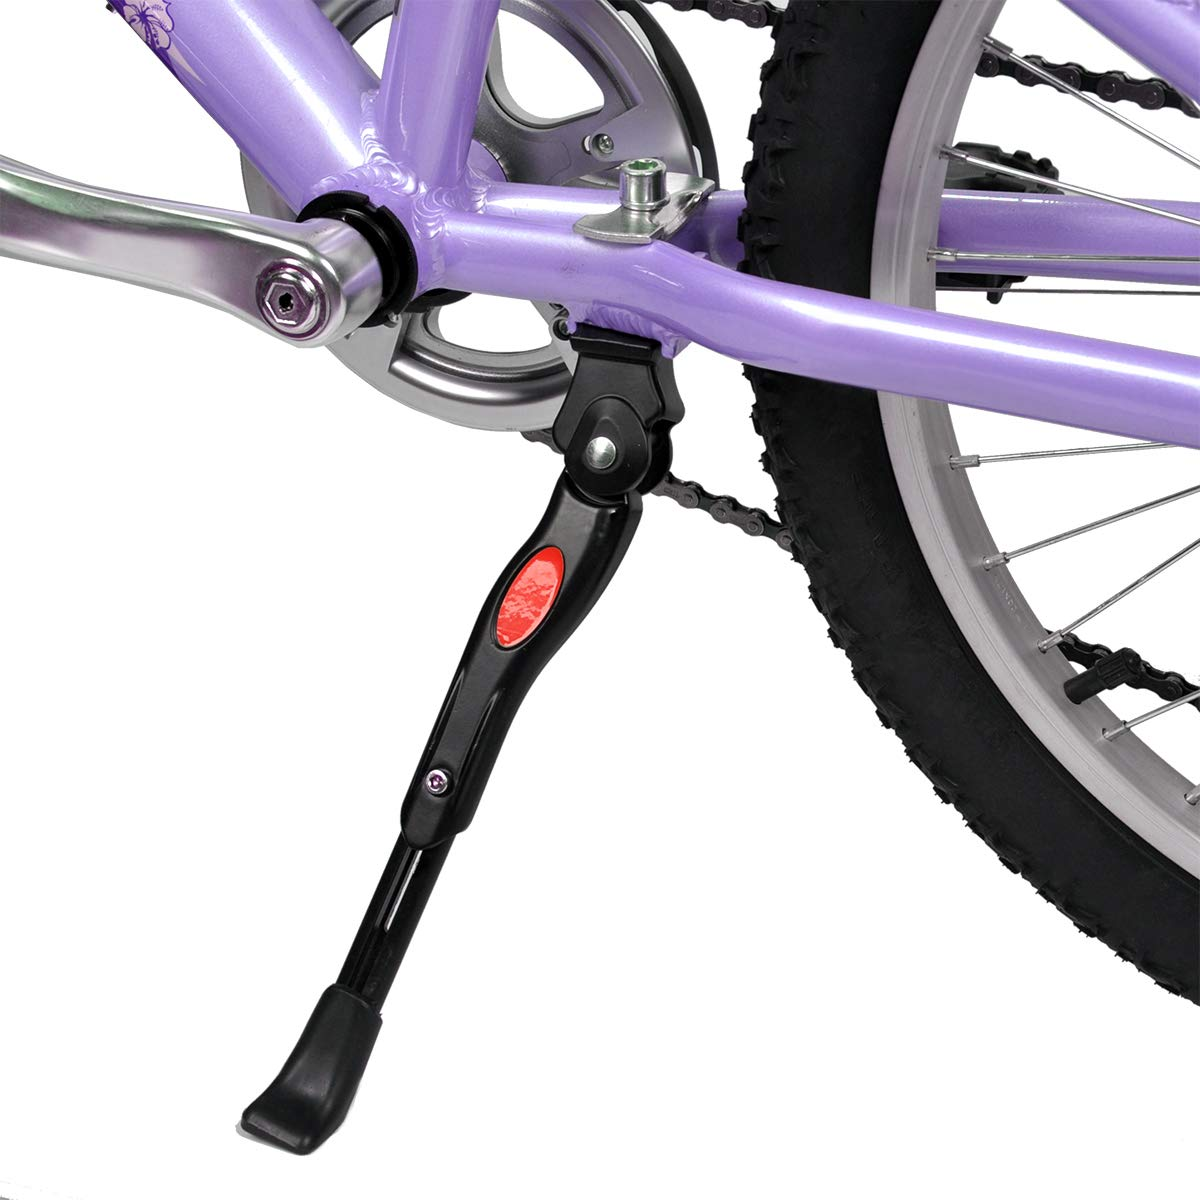 SEISSO Bike Bicycle Kickstands Adjustable Center Mount for 22 24 26 Inch Bicycles Aluminum Alloy Kickstands for Mountain Bike Road Bike 22-26 Inch Bicycles Adult